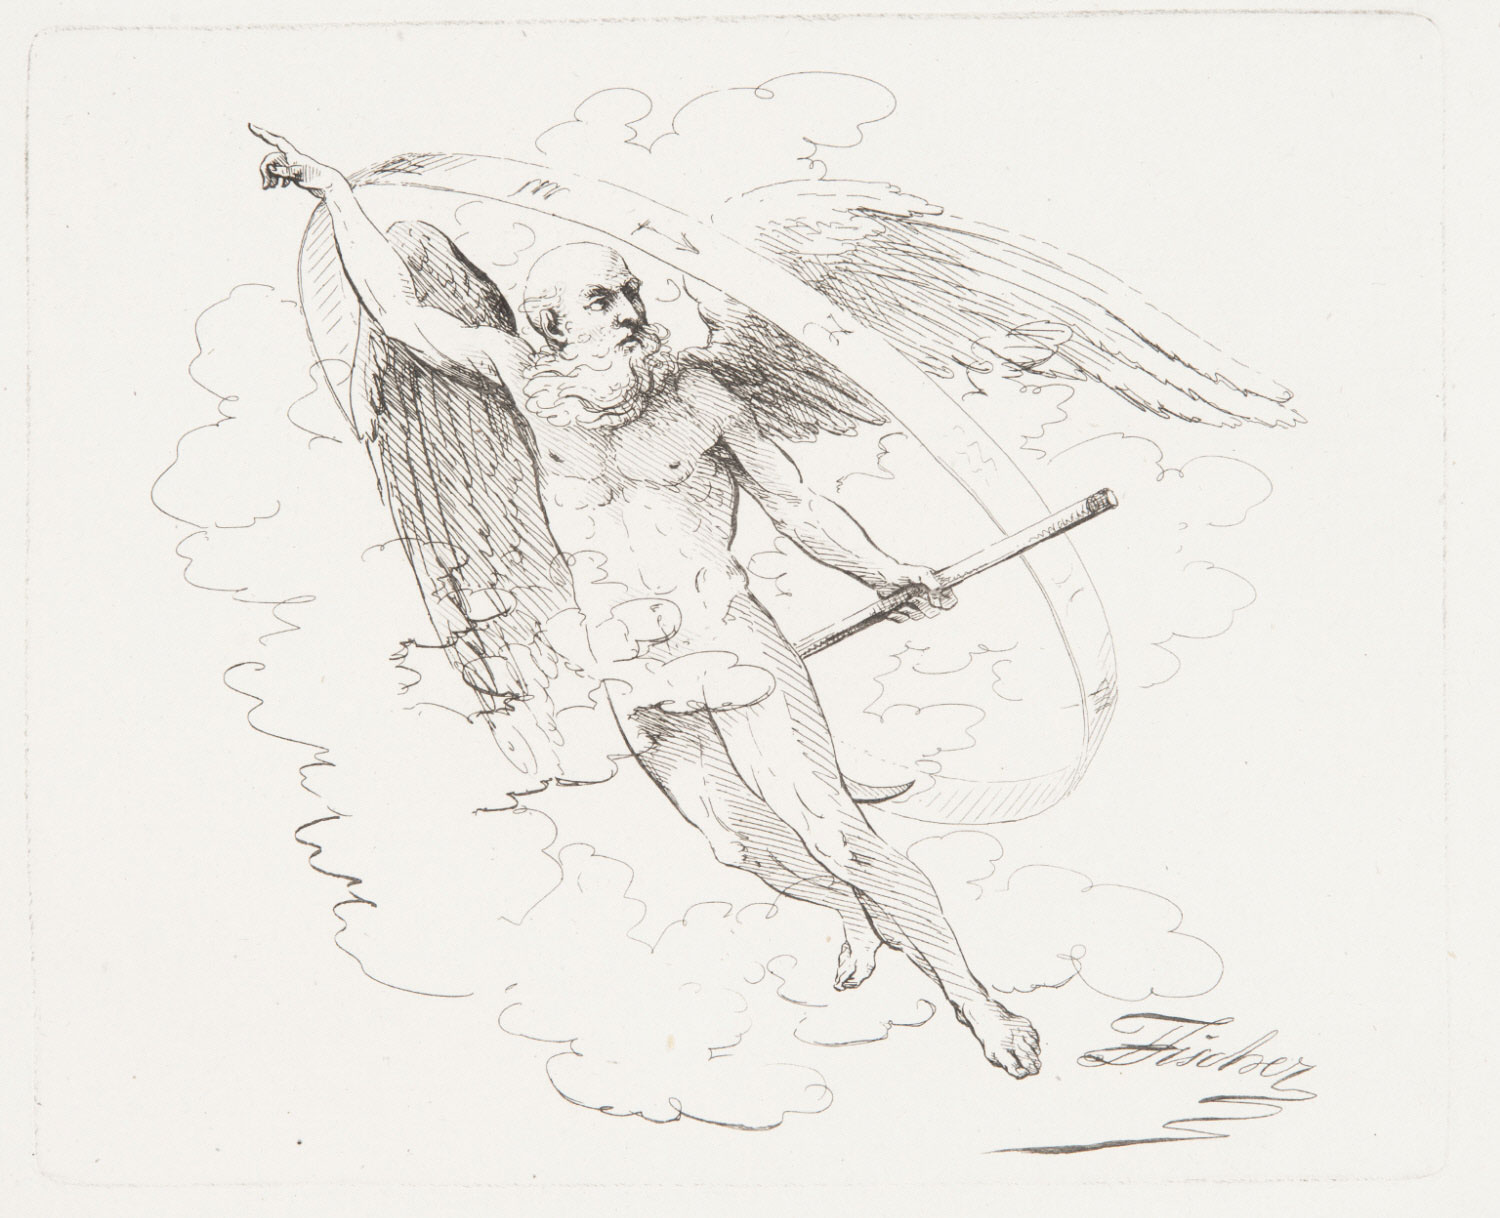 Allegorical Winged Figure of Time with the Zodiac